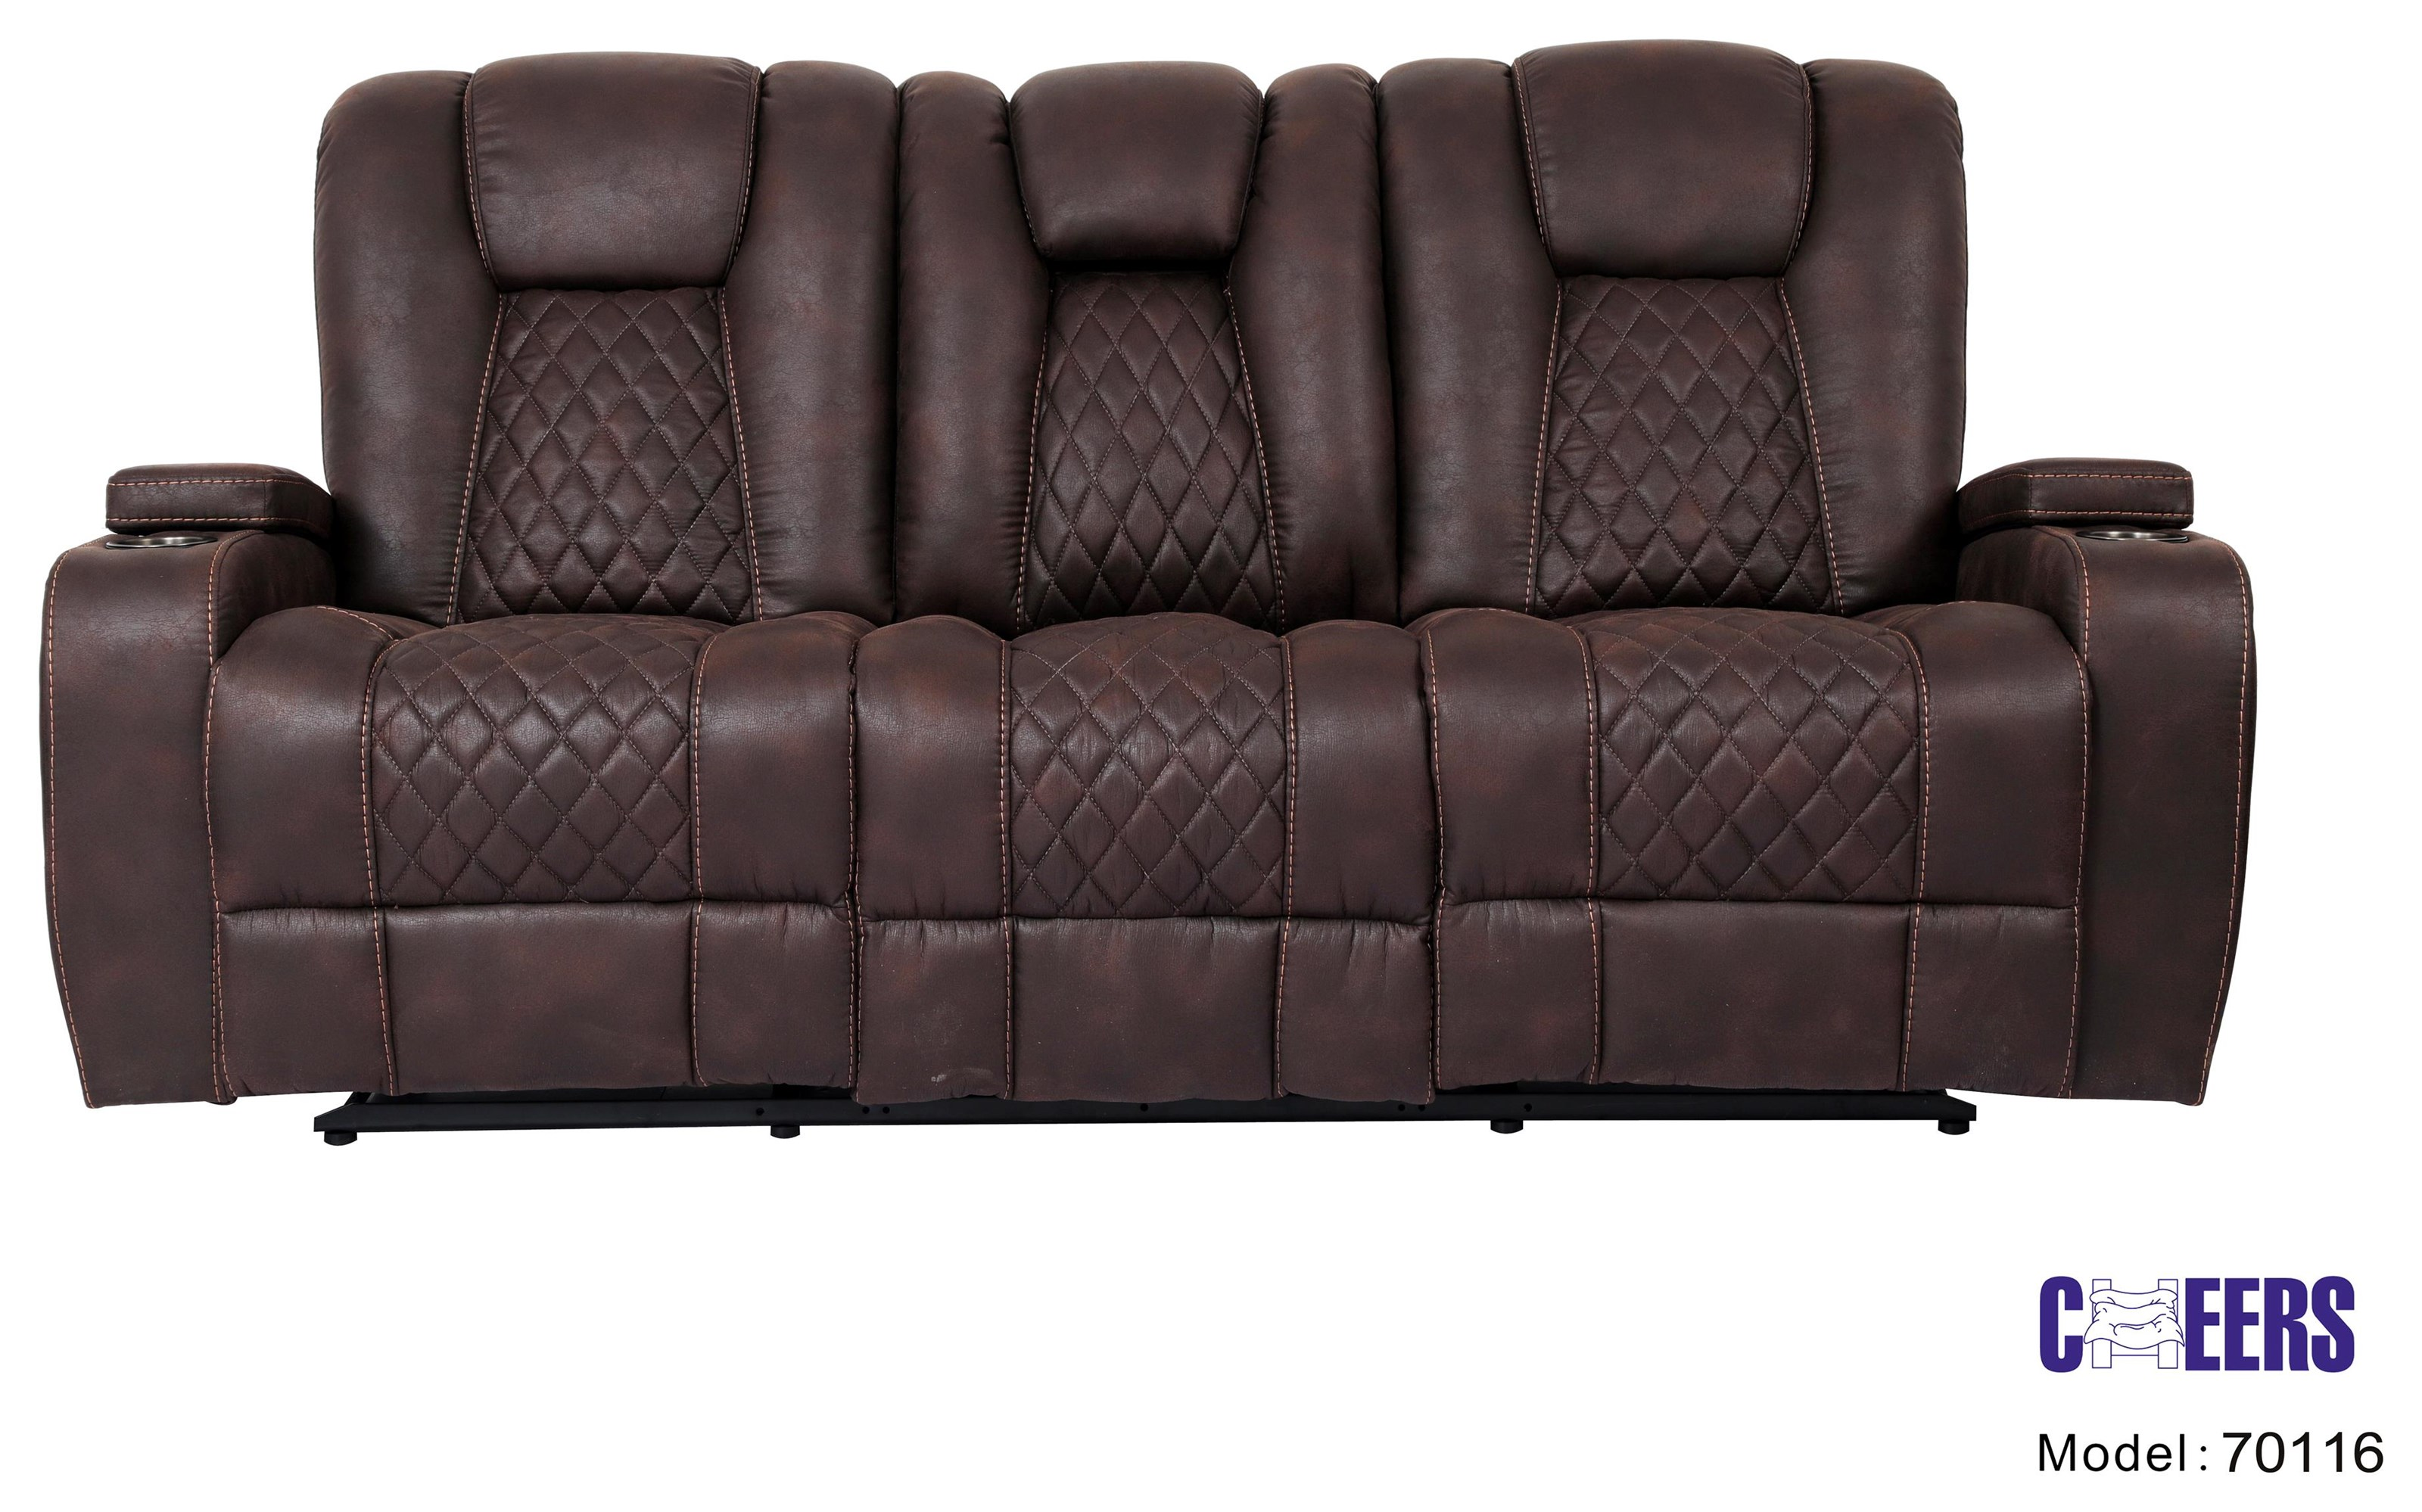 70116 Manual Transformer Reclining Sofa w/ Table by Cheers at Westrich Furniture & Appliances